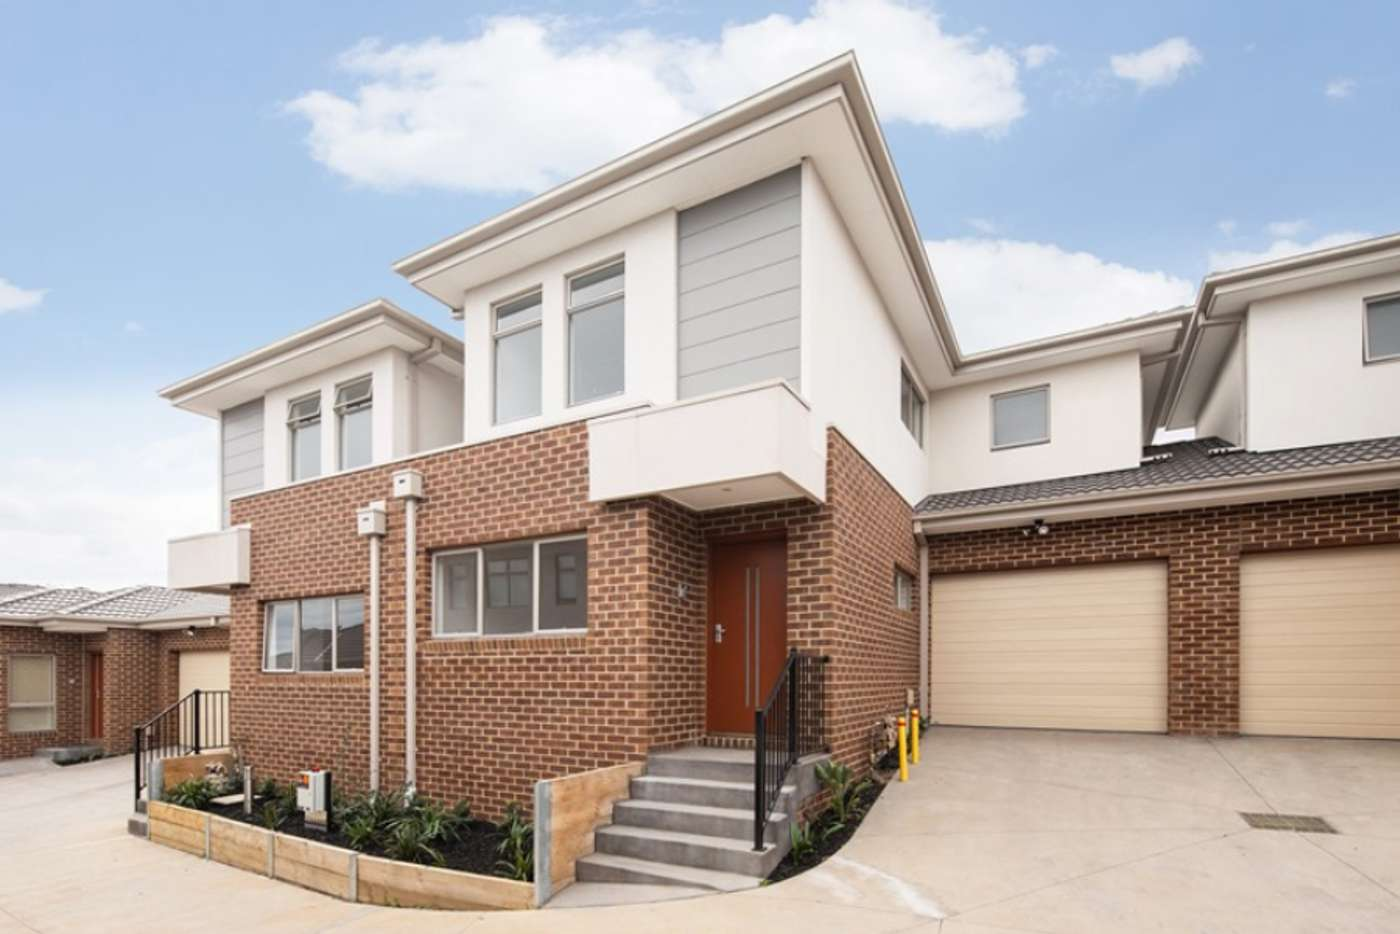 Main view of Homely townhouse listing, 3/41-43 Jones Road, Dandenong VIC 3175